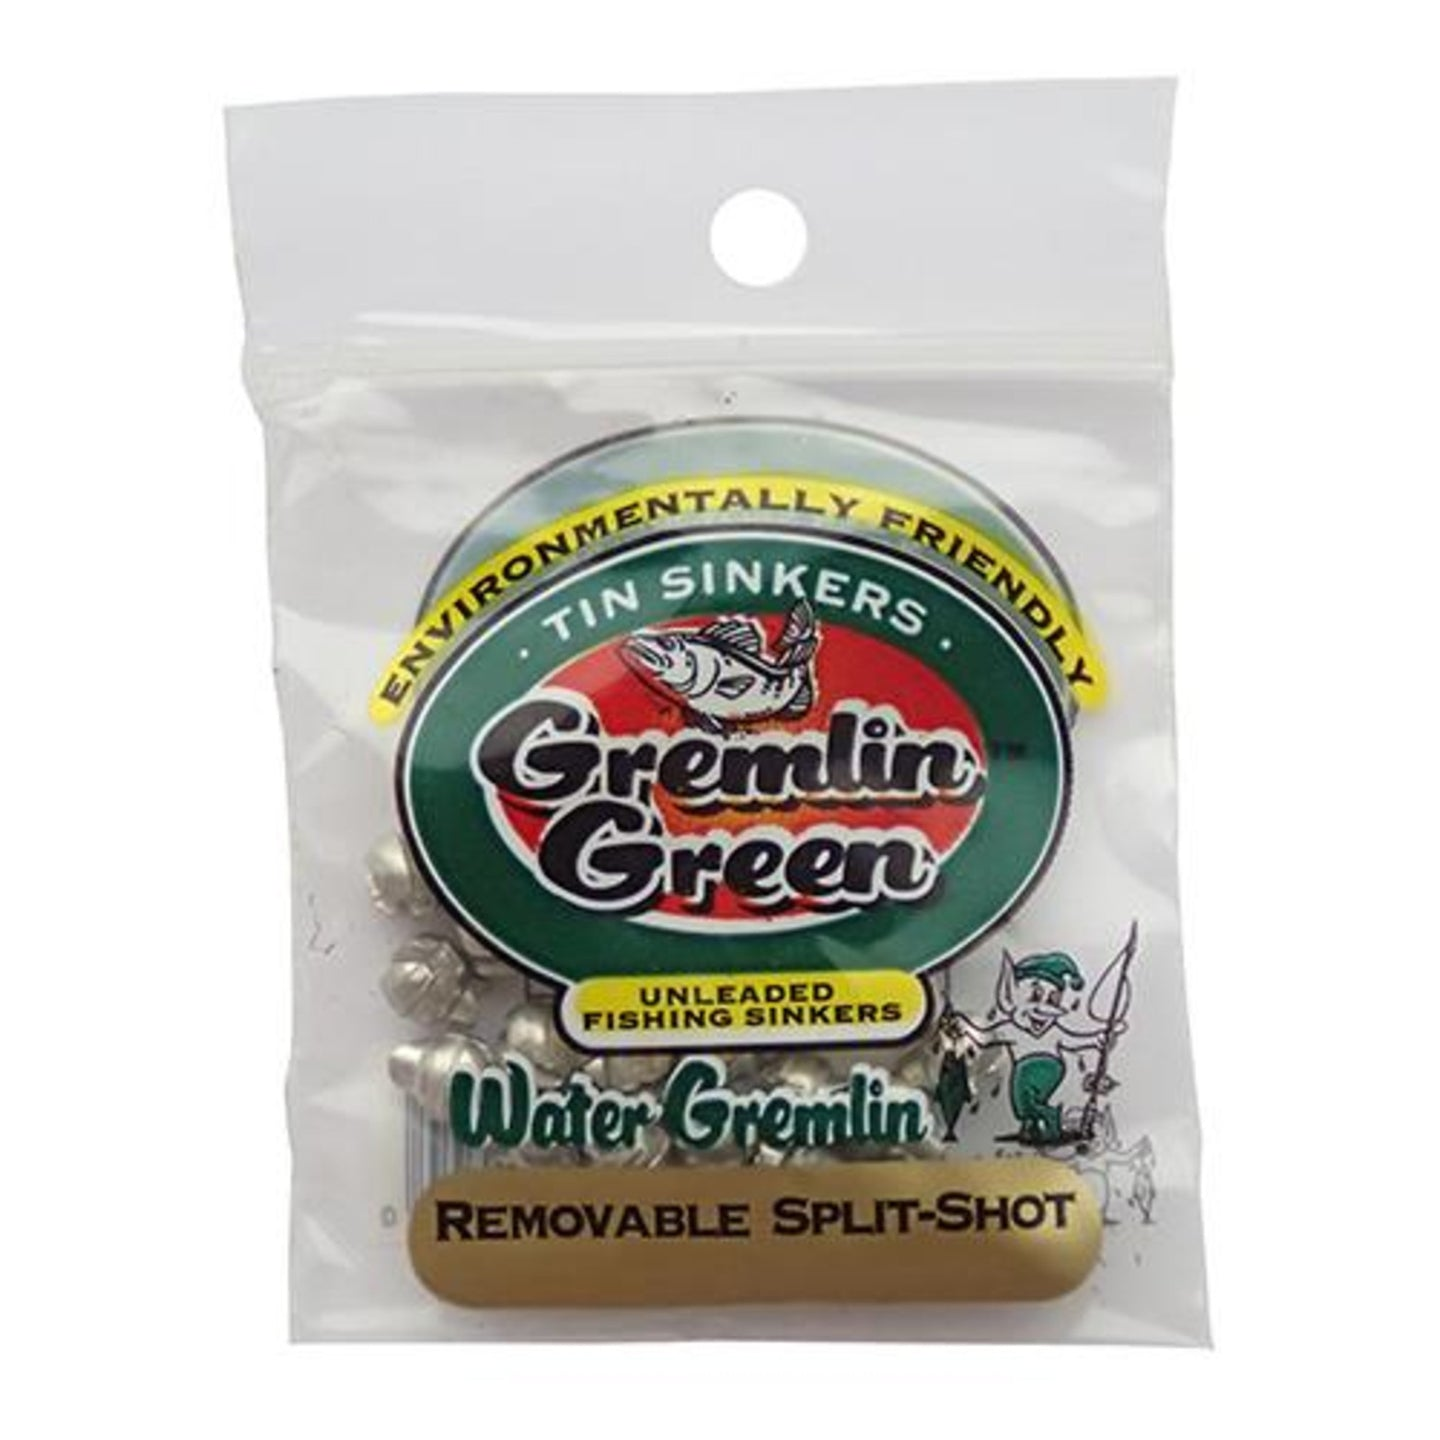 Water Gremlin Green Removable Tin Split Shot